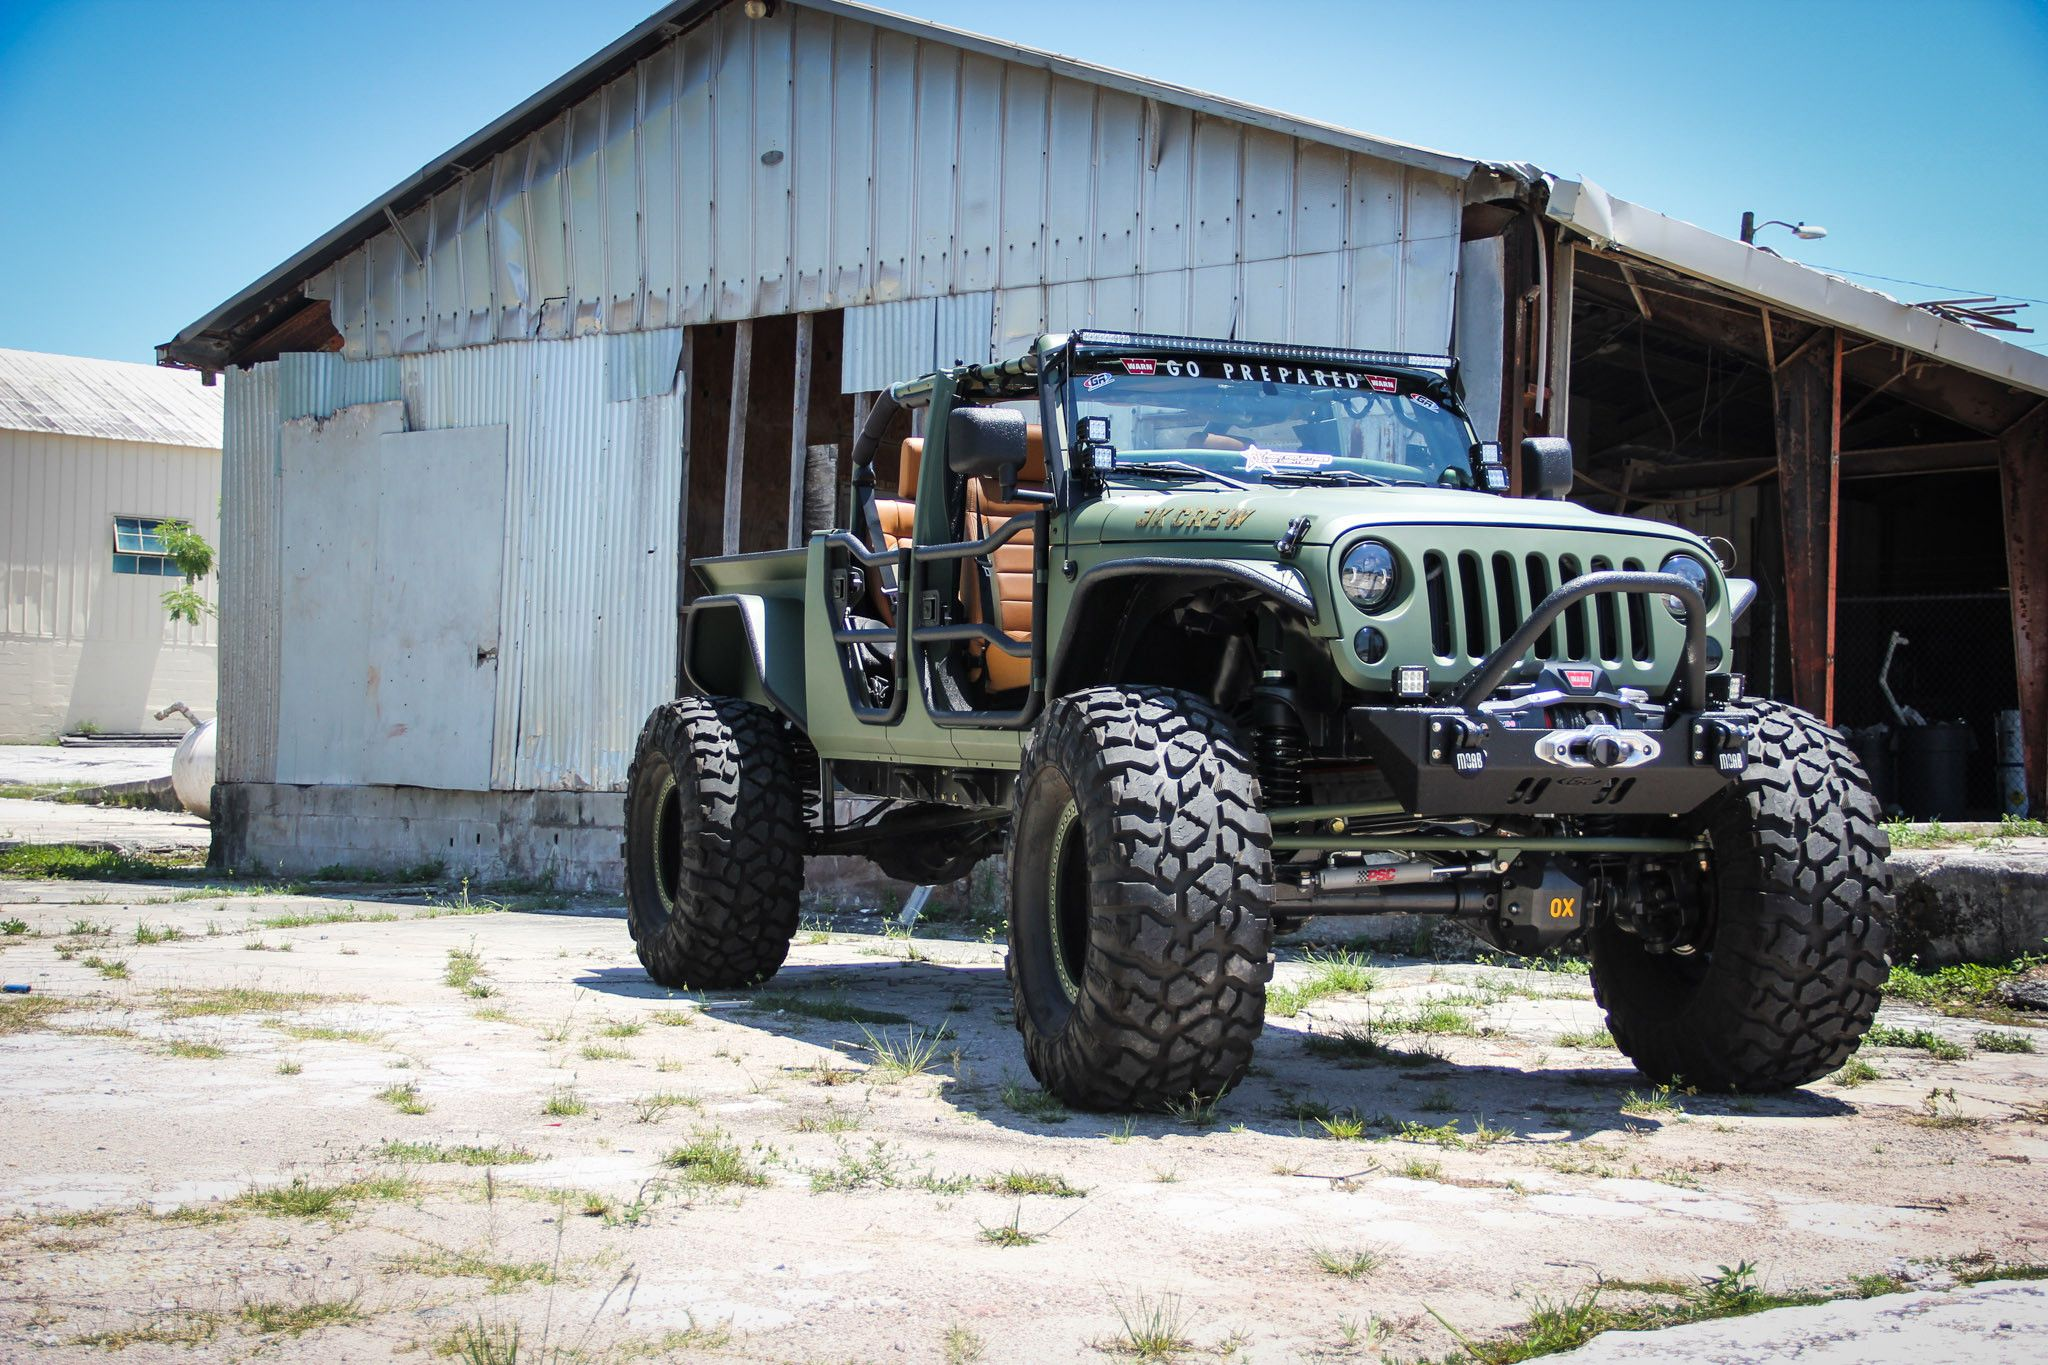 Jeep Wrangler Truck Conversion Meet the JK Crew The JK